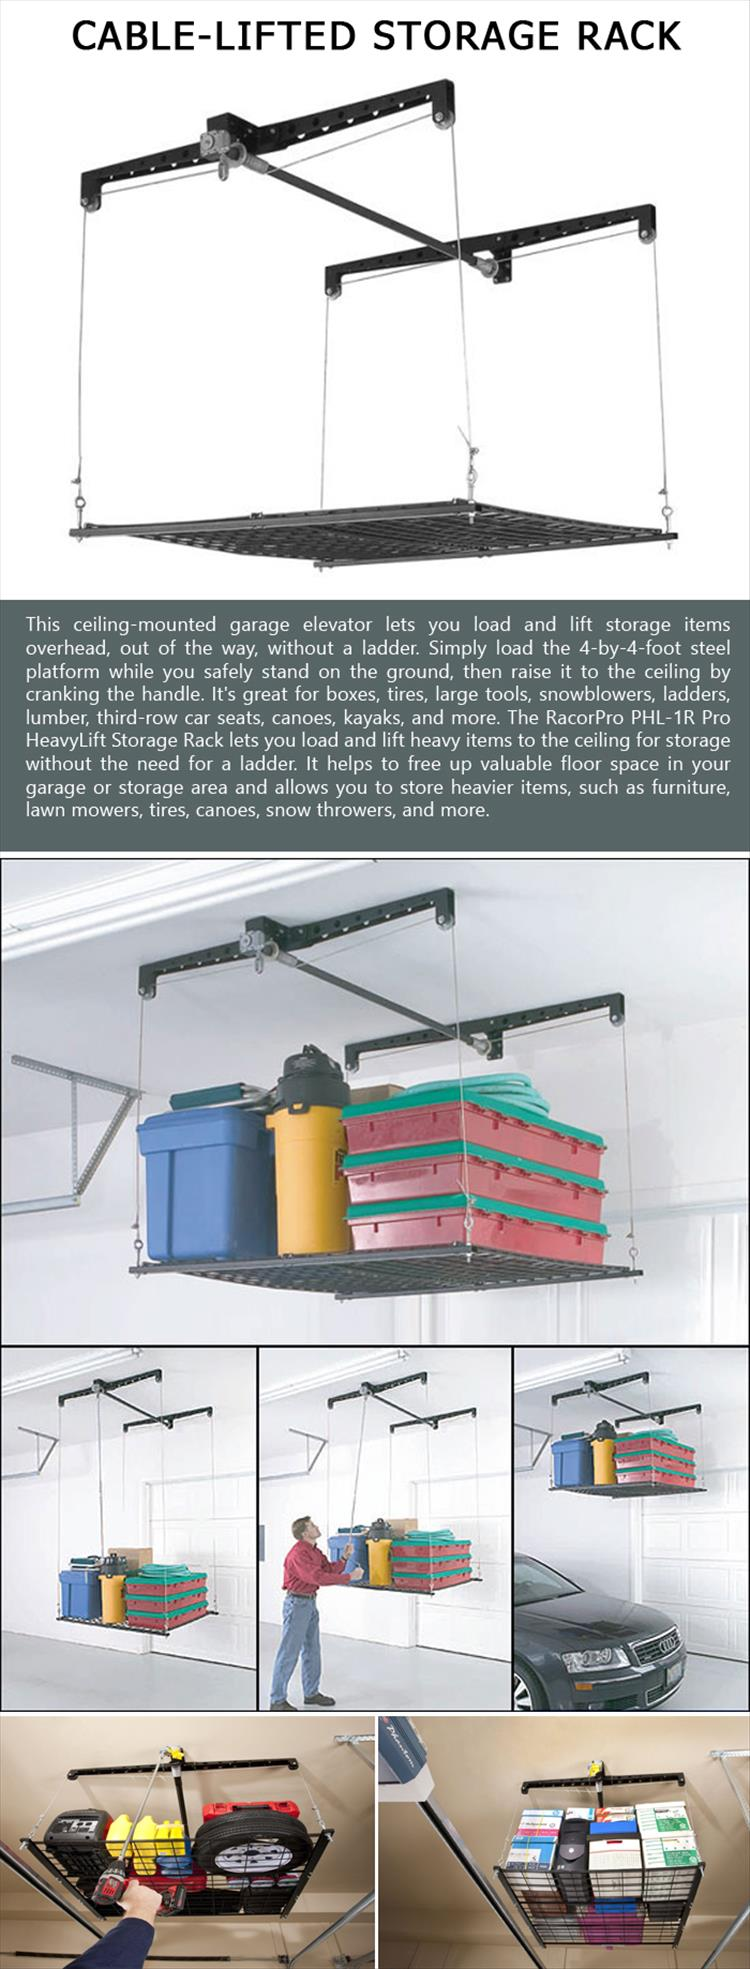 Cable-Lifted Storage Rack